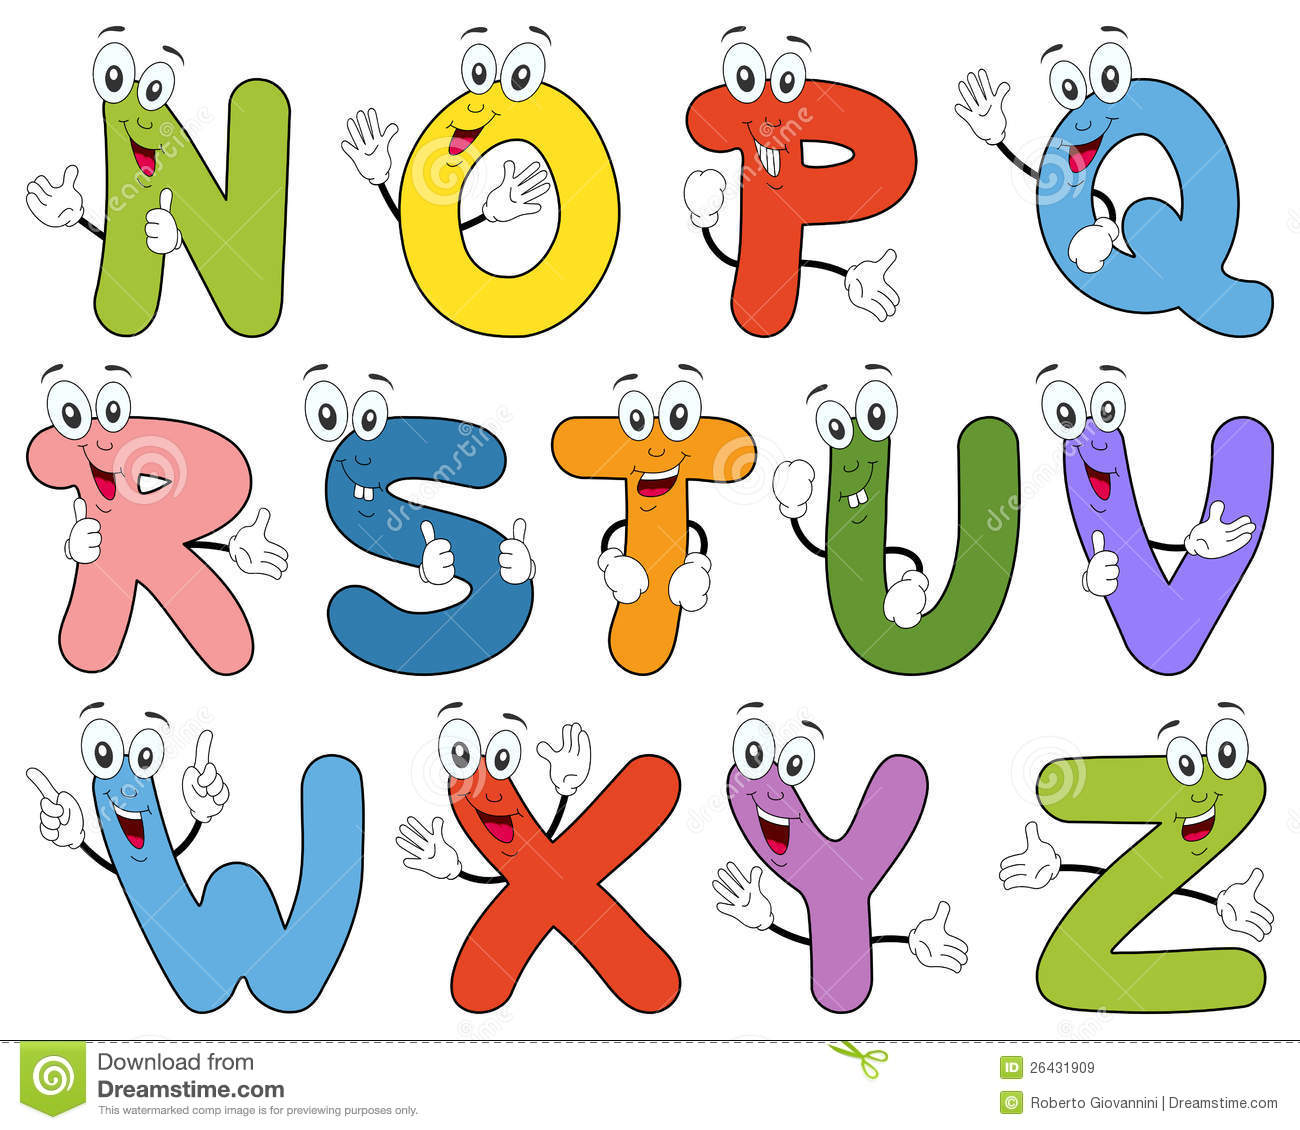 Free animated alphabet clipart graphic transparent library Cartoon Alphabet Characters N-Z Royalty Free Stock Images - Image ... graphic transparent library